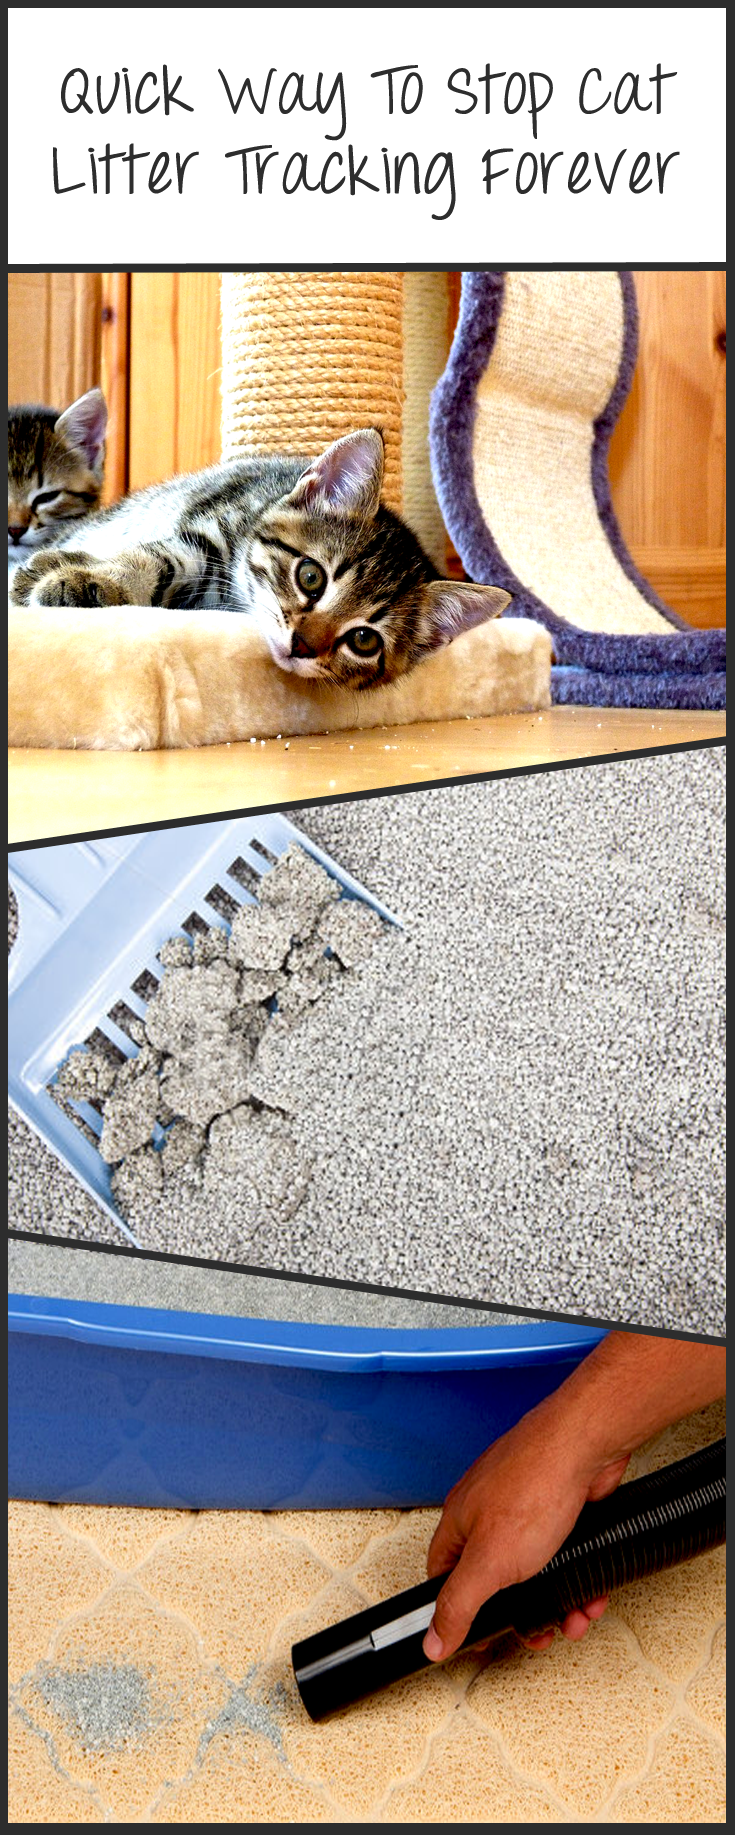 Here's A Quick Way To Stop Cat Litter Tracking Forever. http://www.easyologypets.com/blogs/news/89533126-here-s-a-quick-way-to-stop-cat-litter-tracking-forever See, if you've been living with cats for years like me, then you know they can be quite the slob. They're clean freaks when it comes to their bodies and their litter boxes, but other than those two areas, they just shrug their tiny shoulders when they see the mess they created after going to the bathroom.